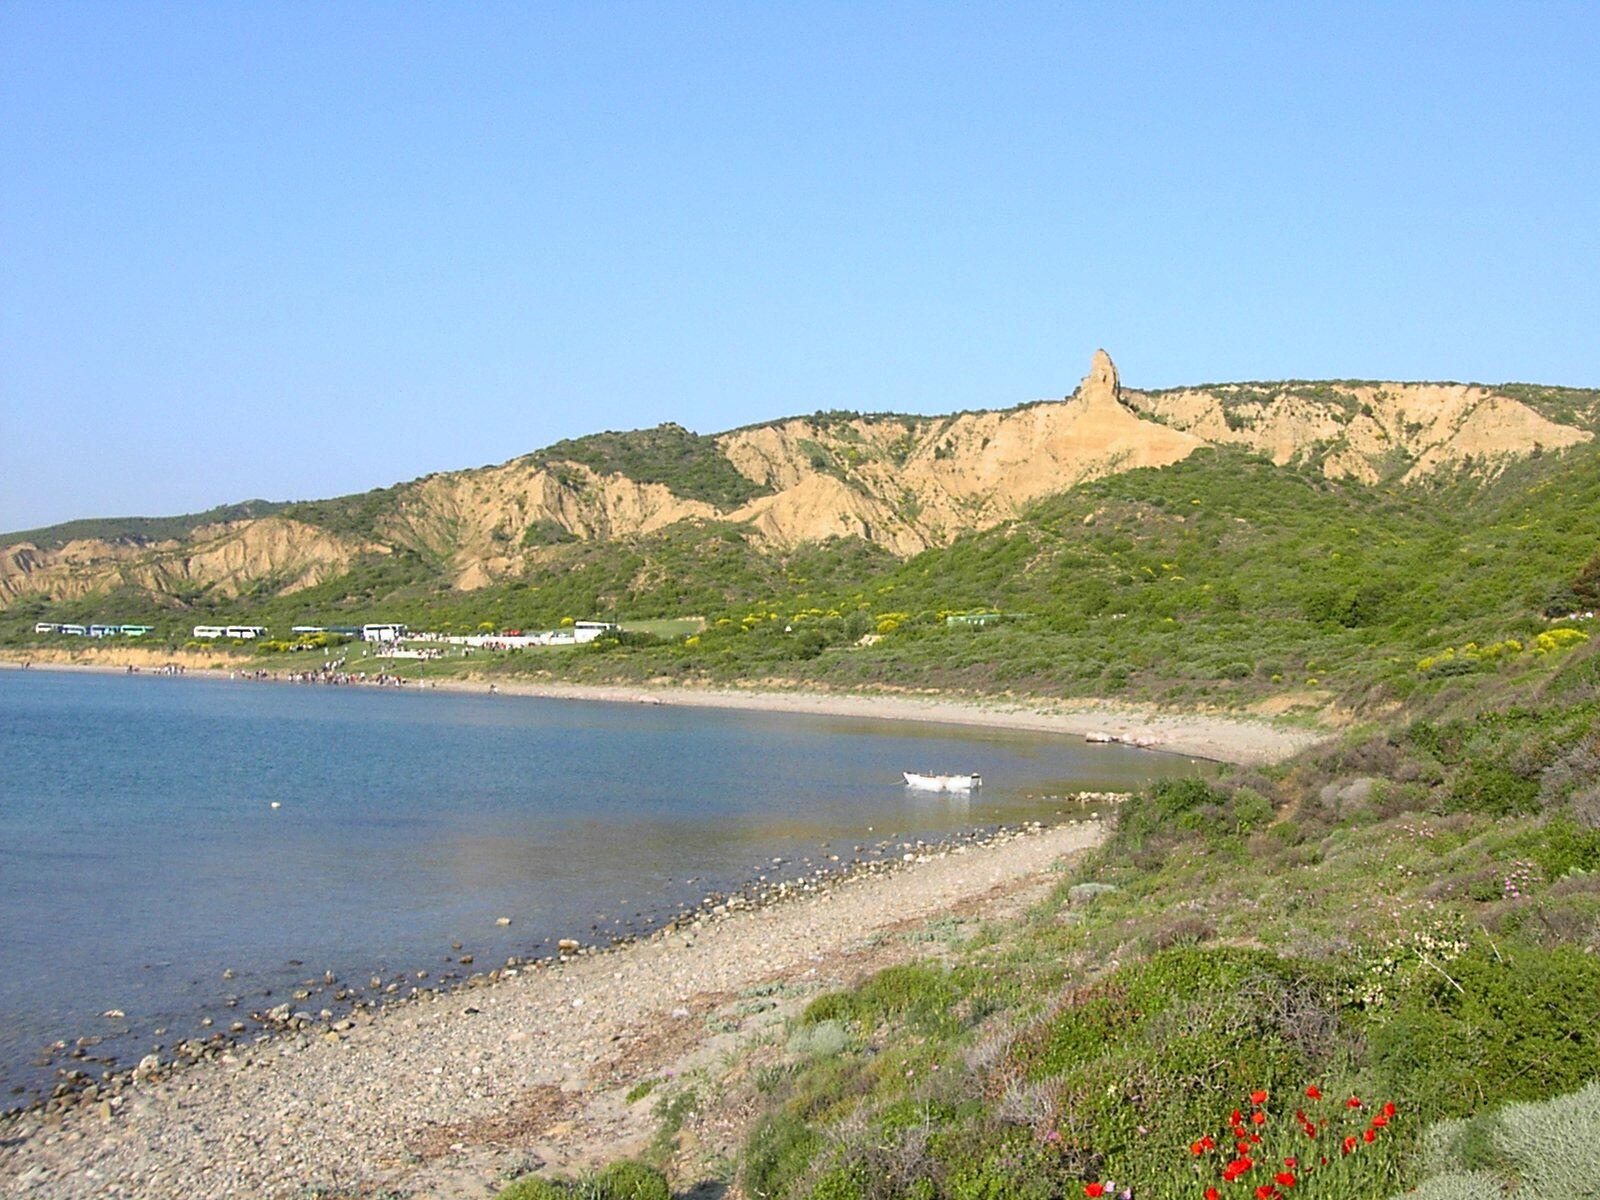 https://i2.wp.com/upload.wikimedia.org/wikipedia/commons/d/da/Ac.gallipoli1.jpg